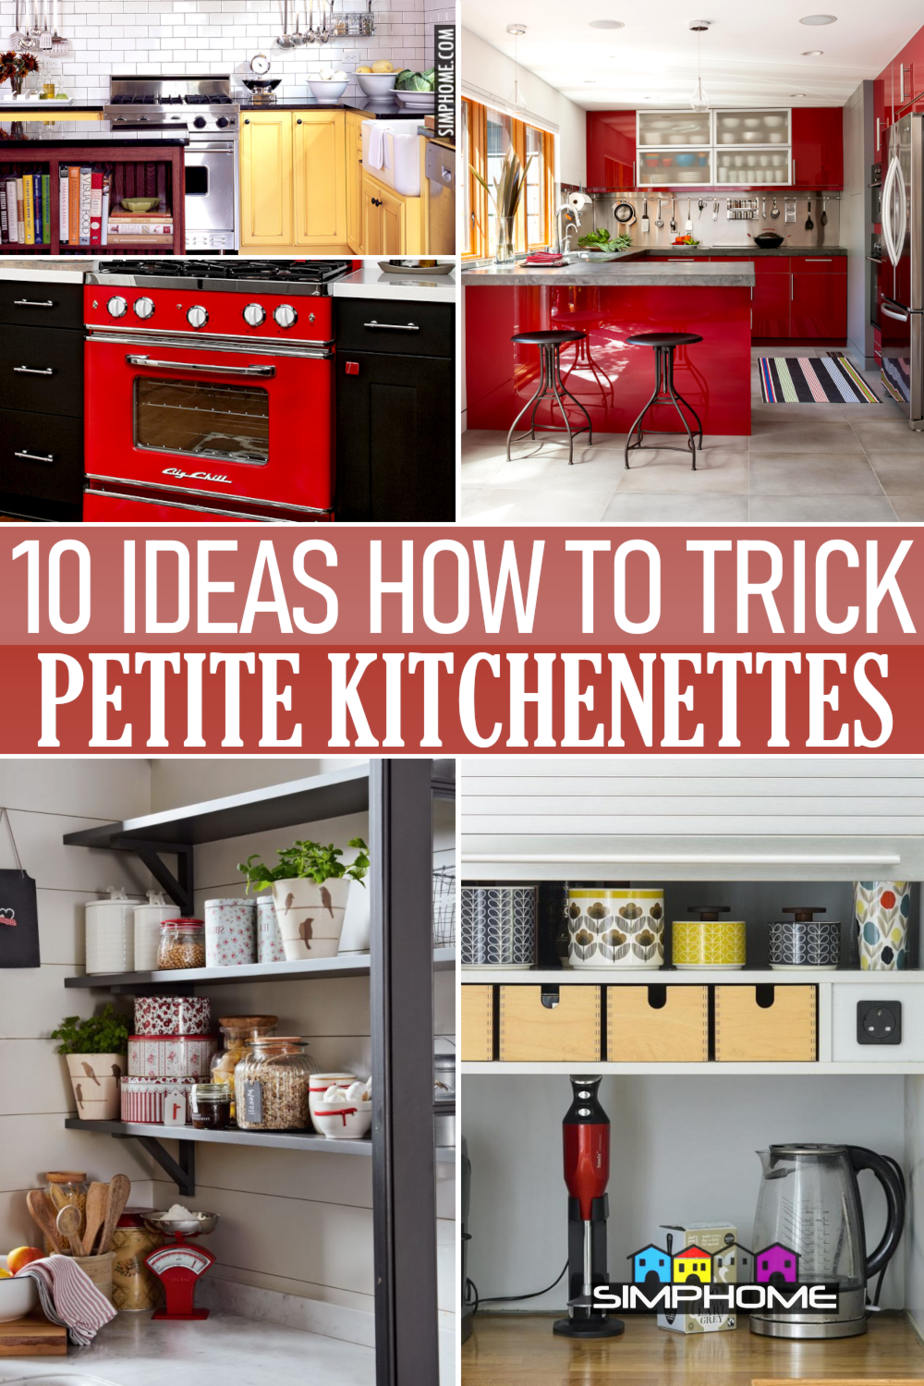 10 Clever Ideas to Trick Petite Kitchenette VIA Simphome.comFeatured